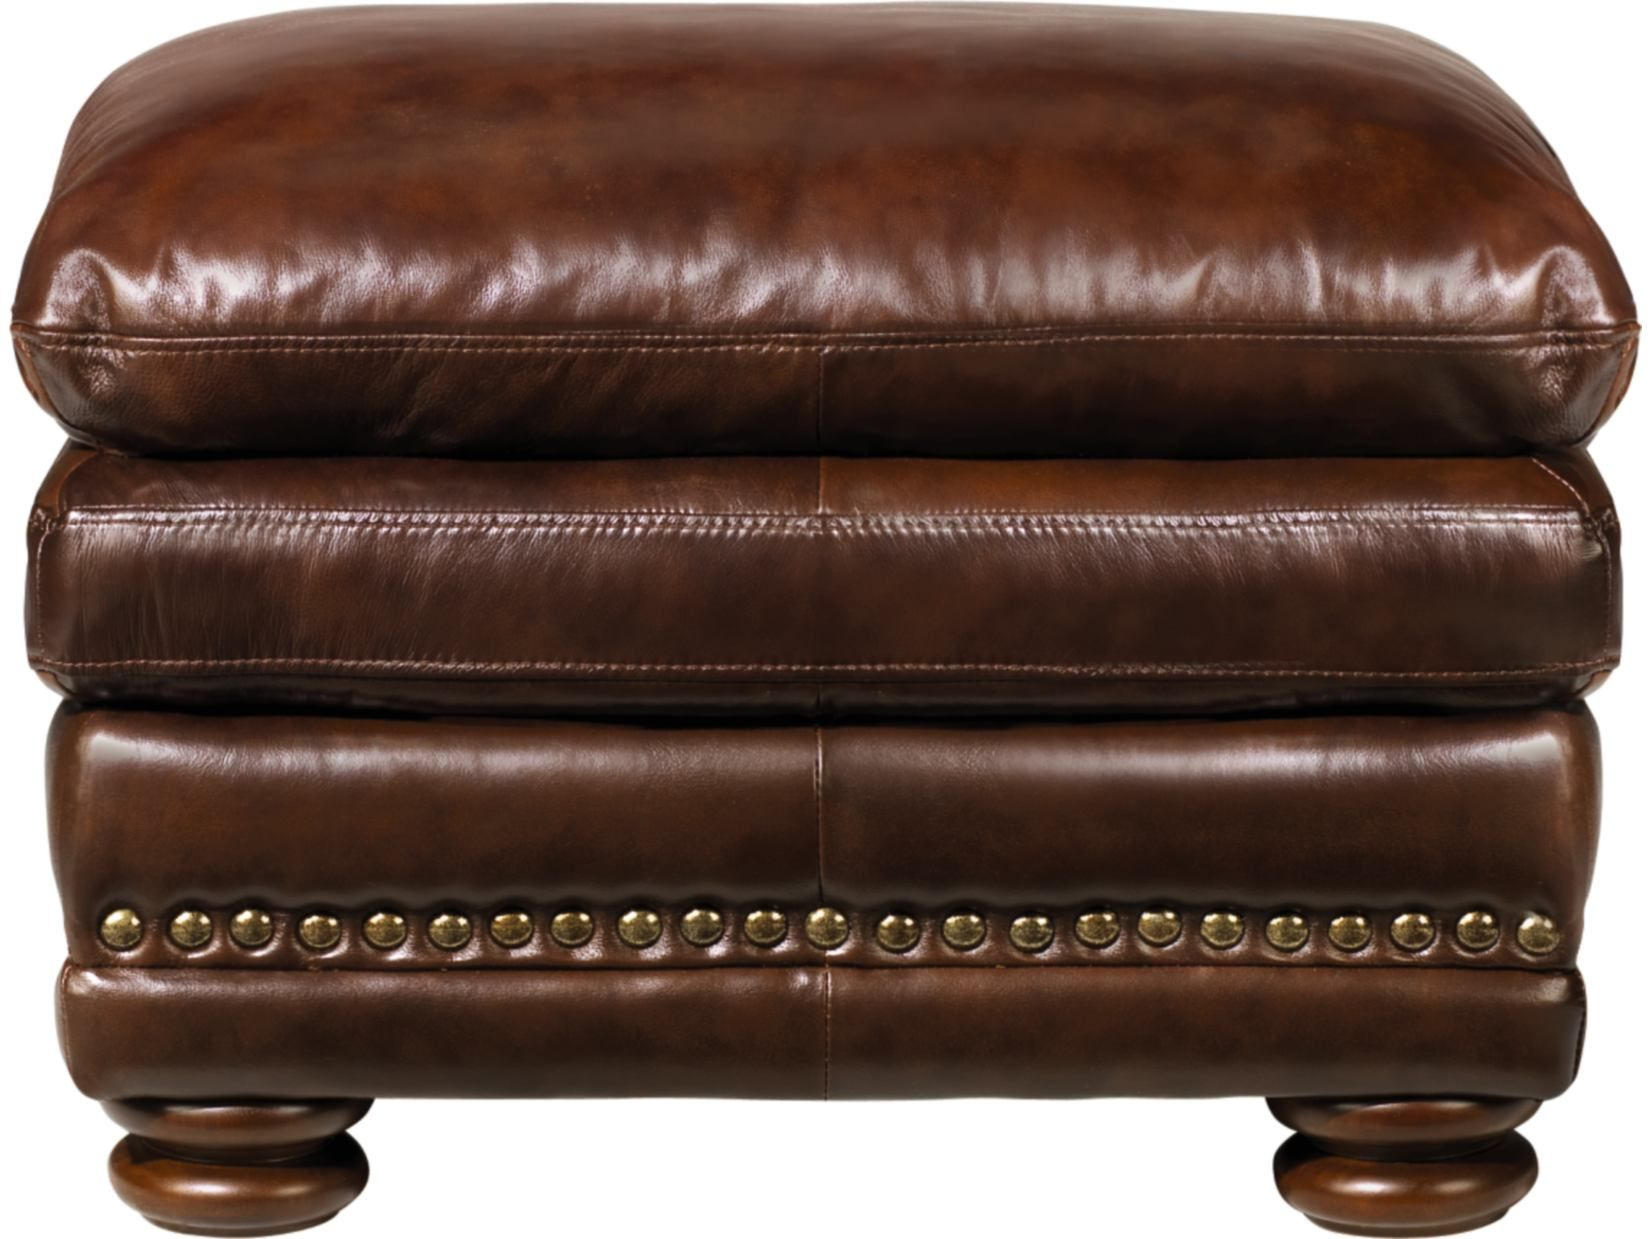 Mckinsley Burgundy Leather Ottoman Value City Furniture Valuecitypintowin Value City Furniture Furniture Ottoman In Living Room [ 1239 x 1650 Pixel ]